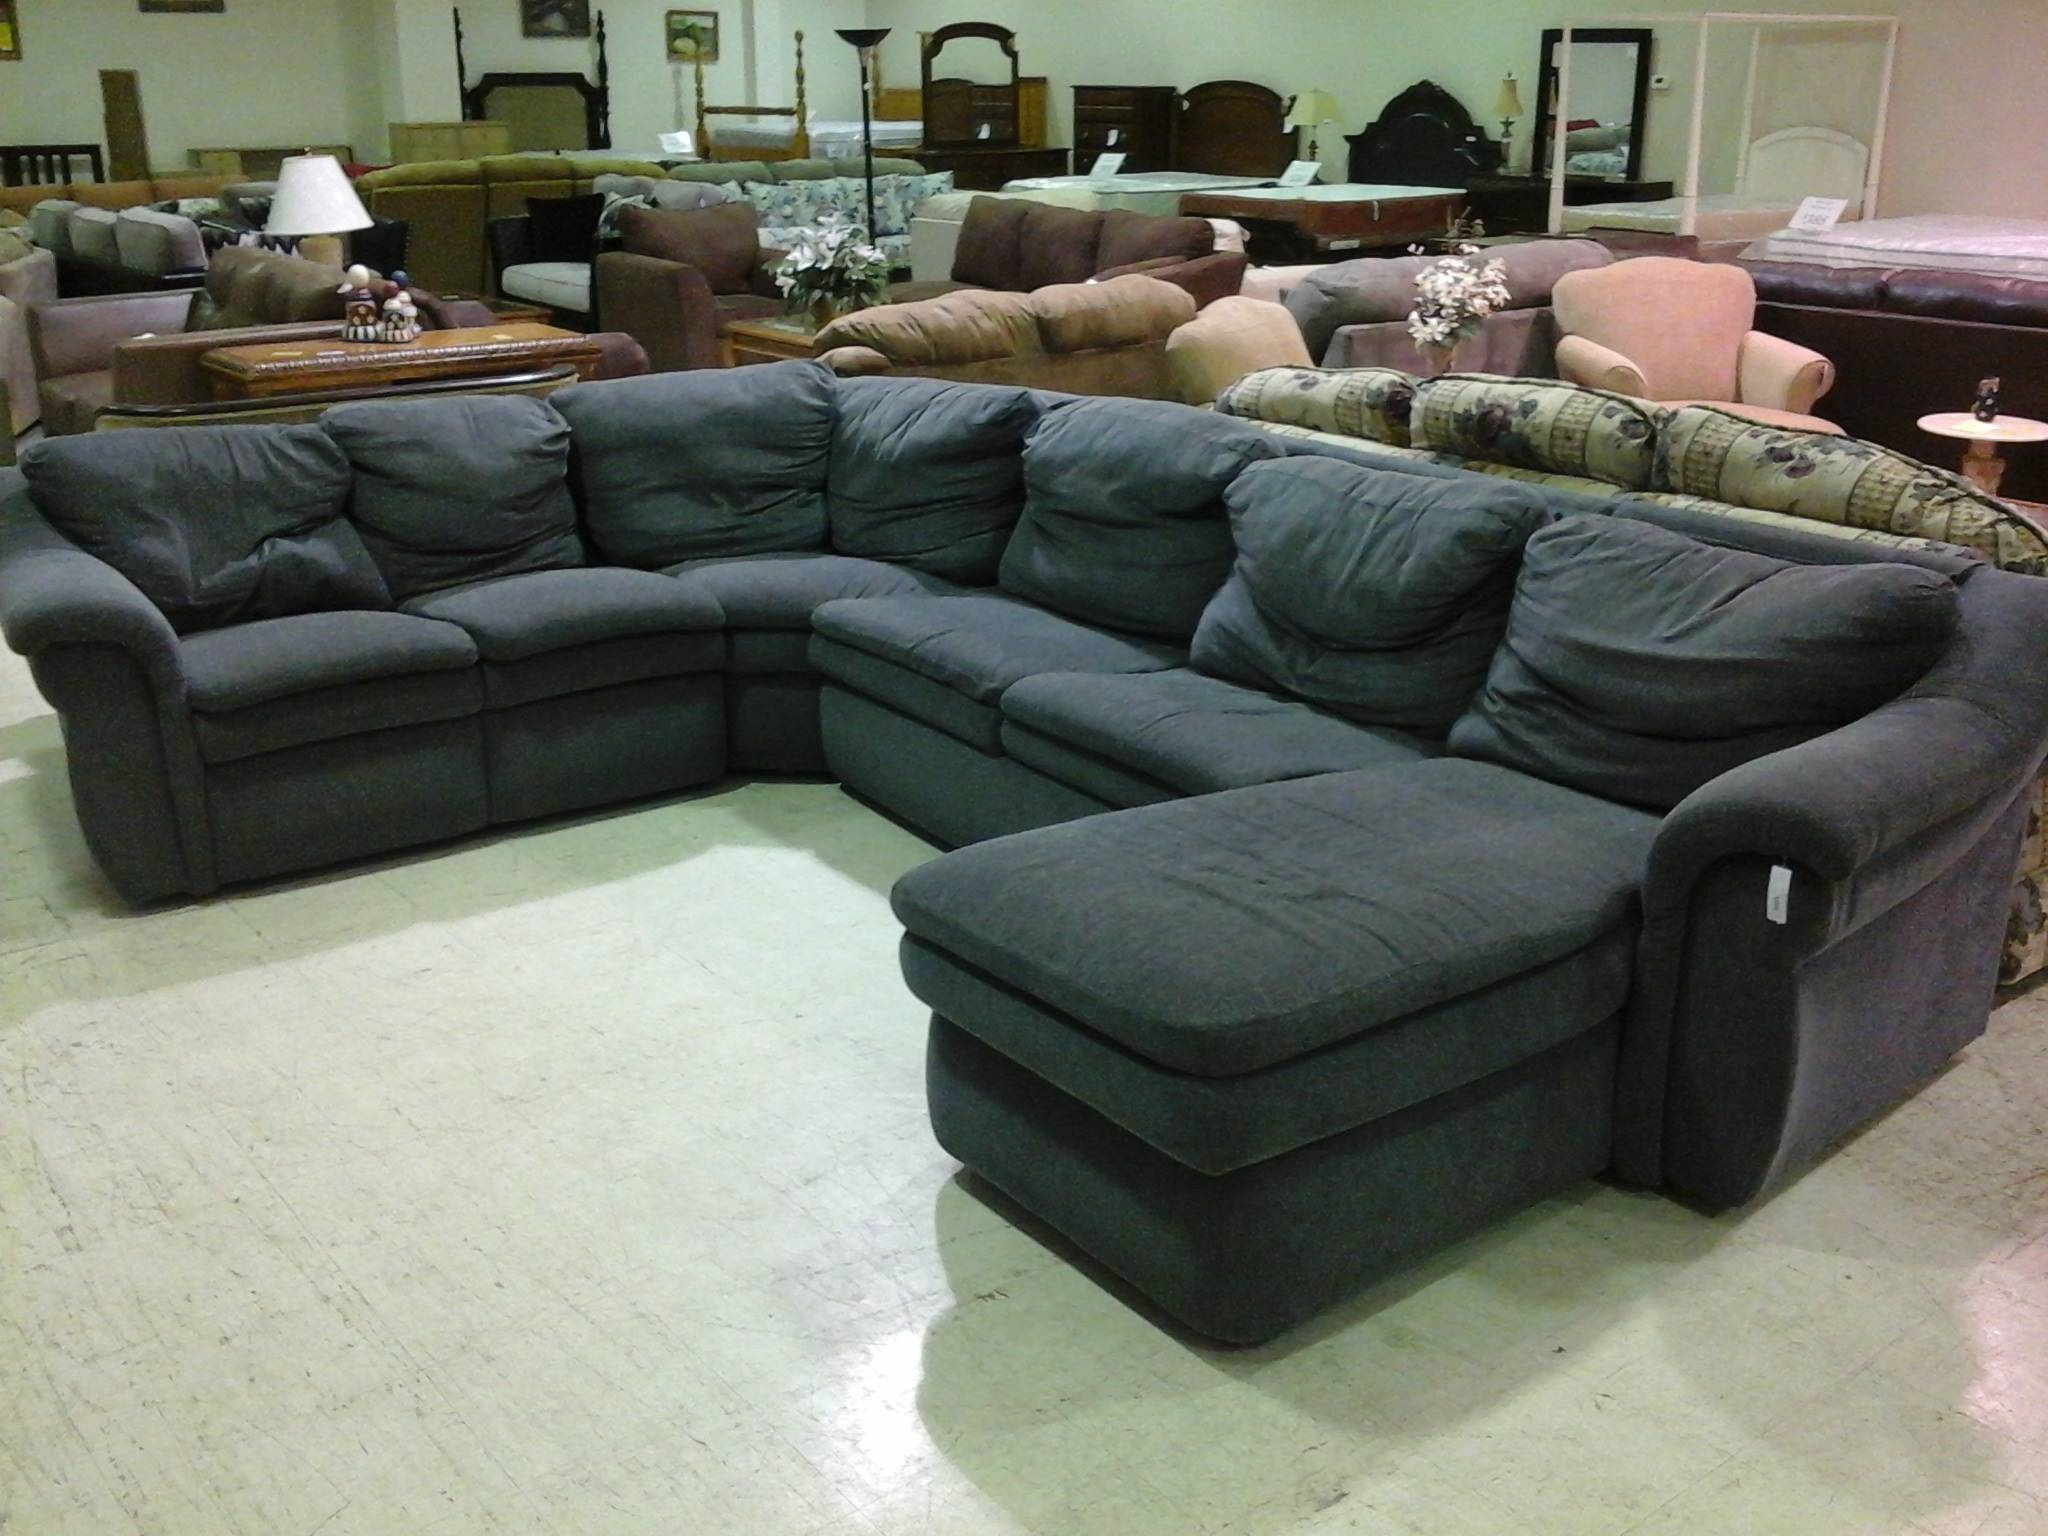 Sofa Chaise Lounge U203A Ashley Furniture Darcy. Slipcovers For regarding Comfortable Sectional Sofa (Image 27 of 30)